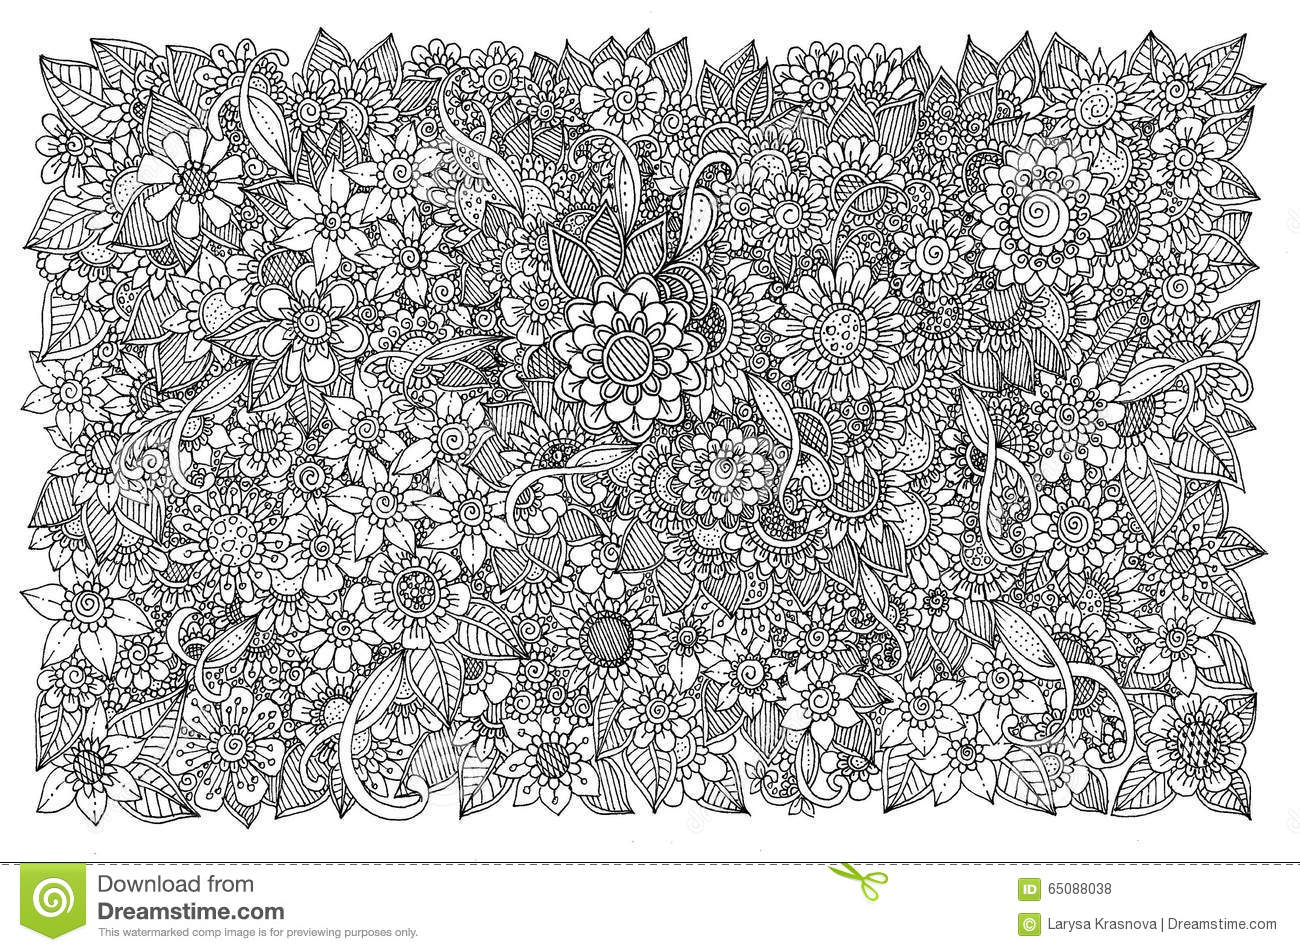 Floral Pattern For Coloring Book Retro Doodle Design Element Black And White Background Zentangle Original Line Art Style